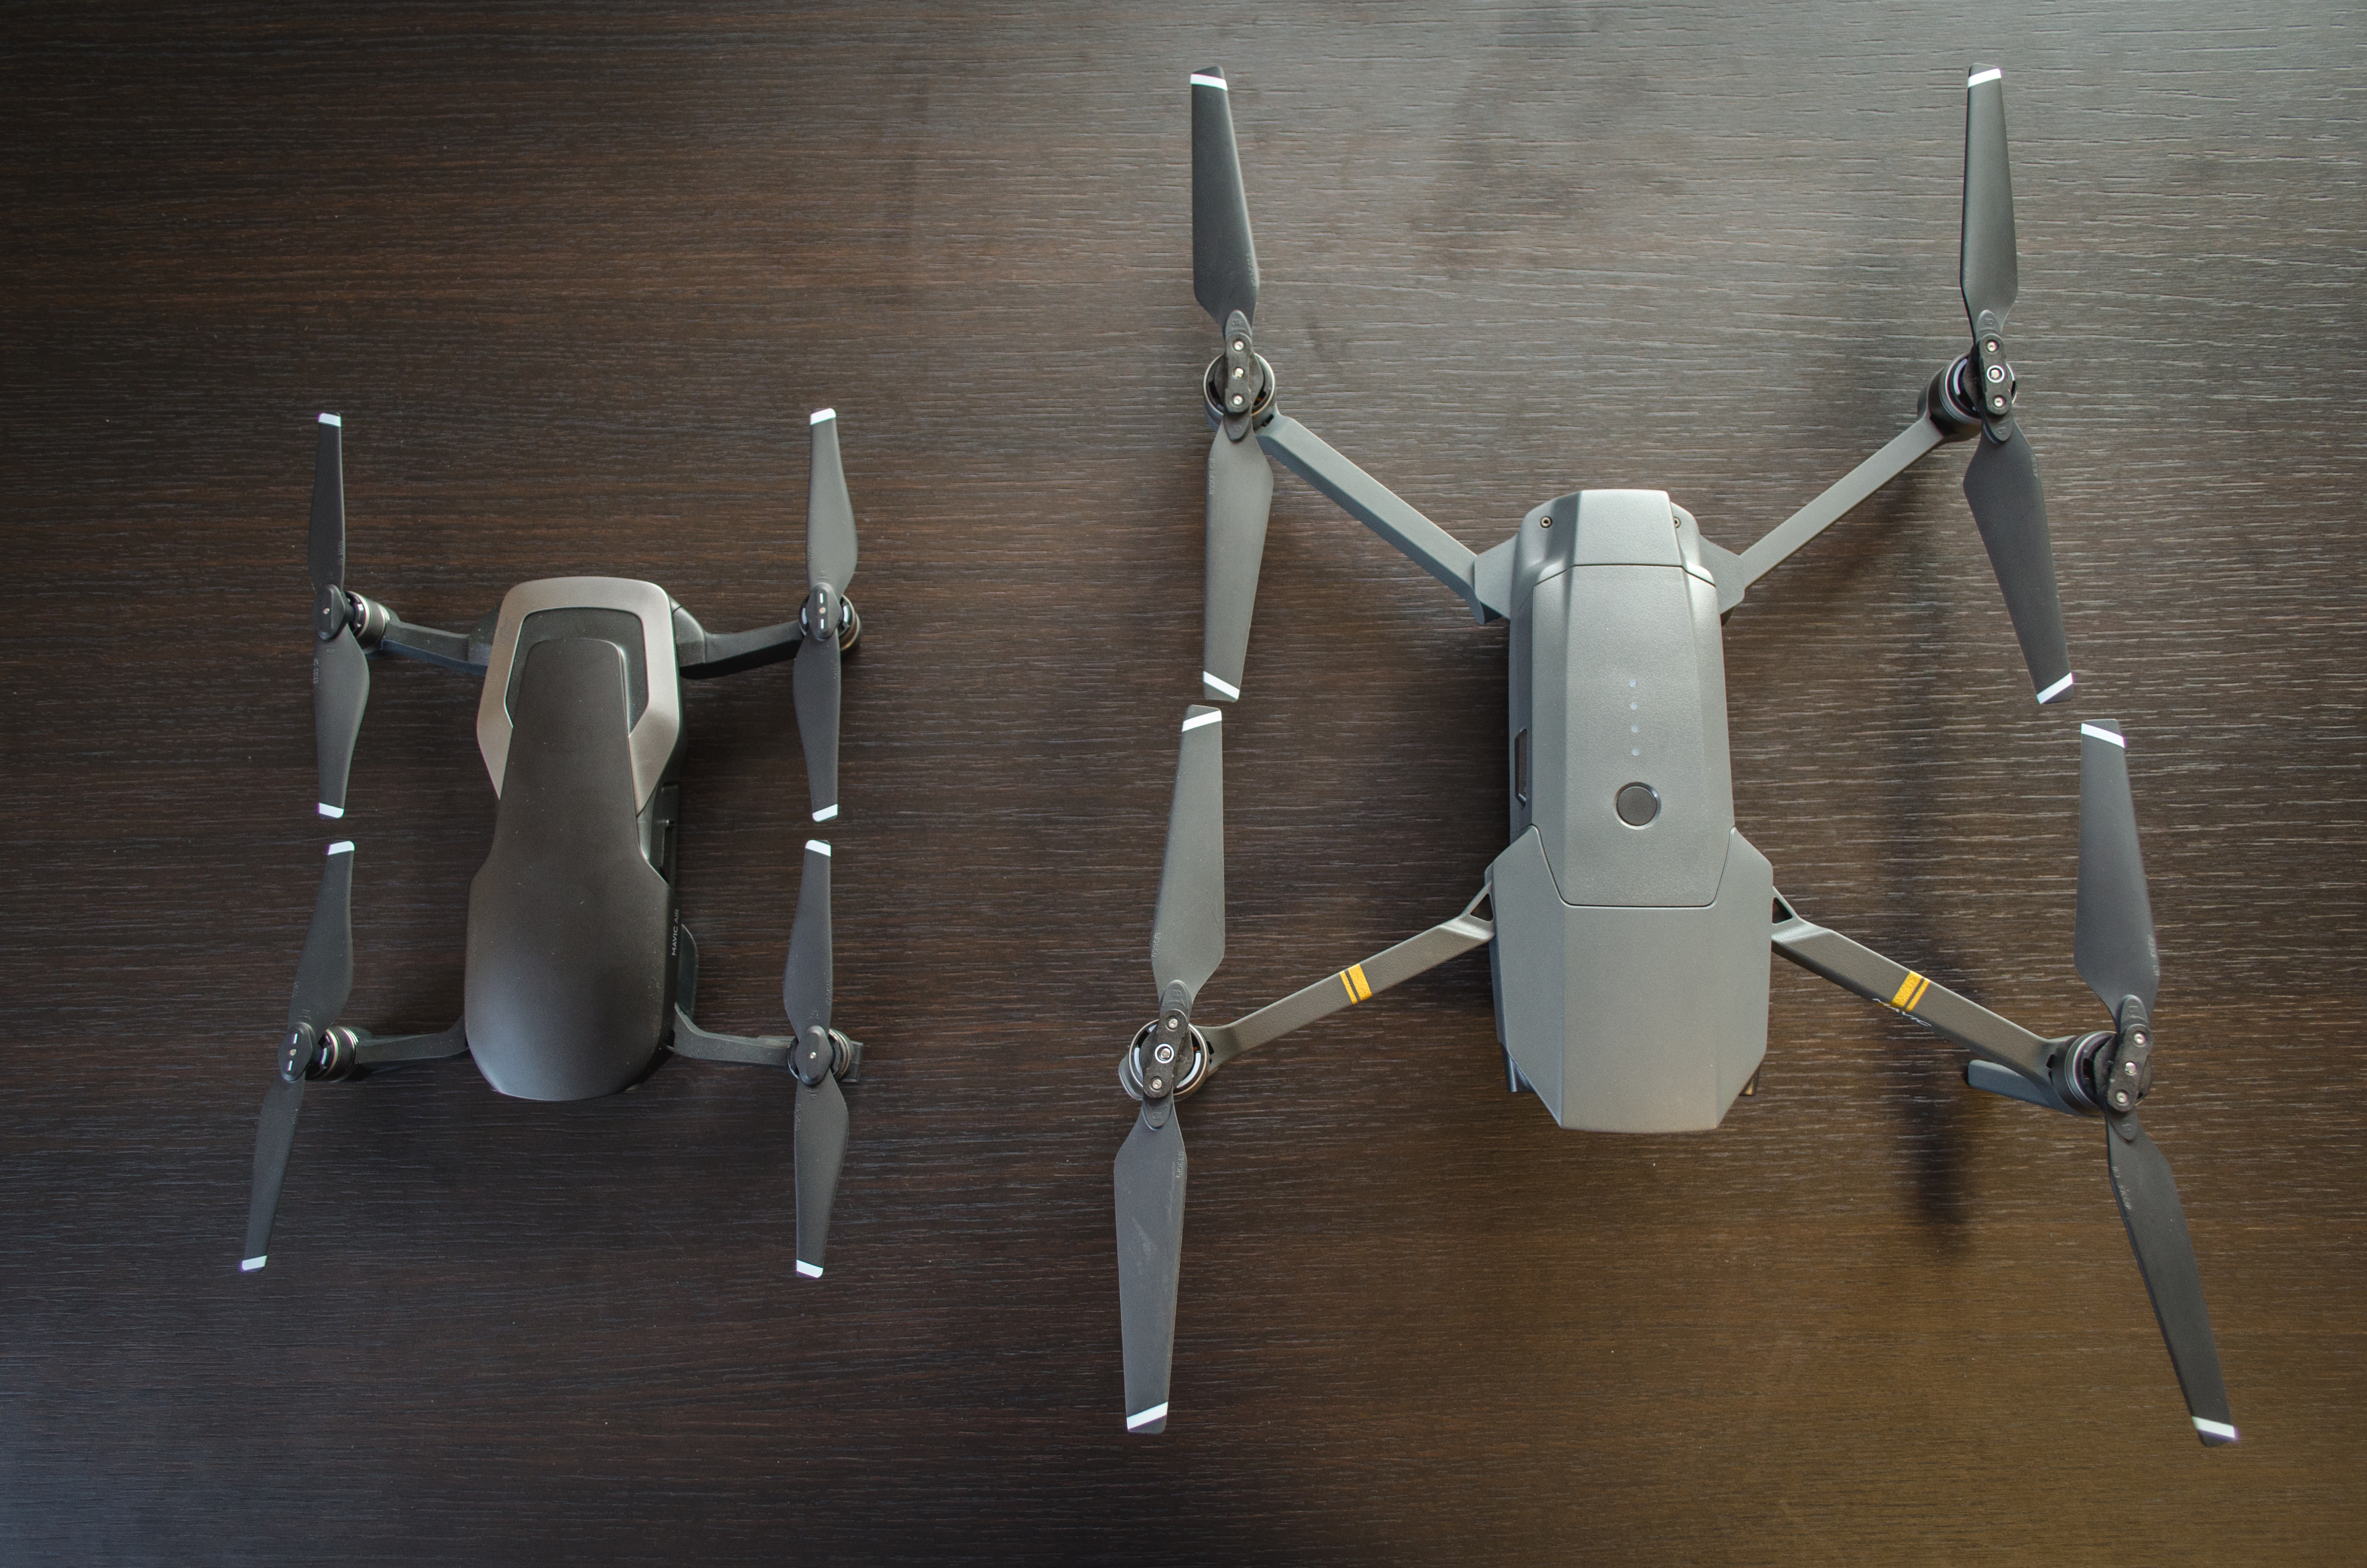 best travel drone, traveling with drone, backpacking drone, mavic air vs mavic pro, smallest mavic, smallest drone, mavic series